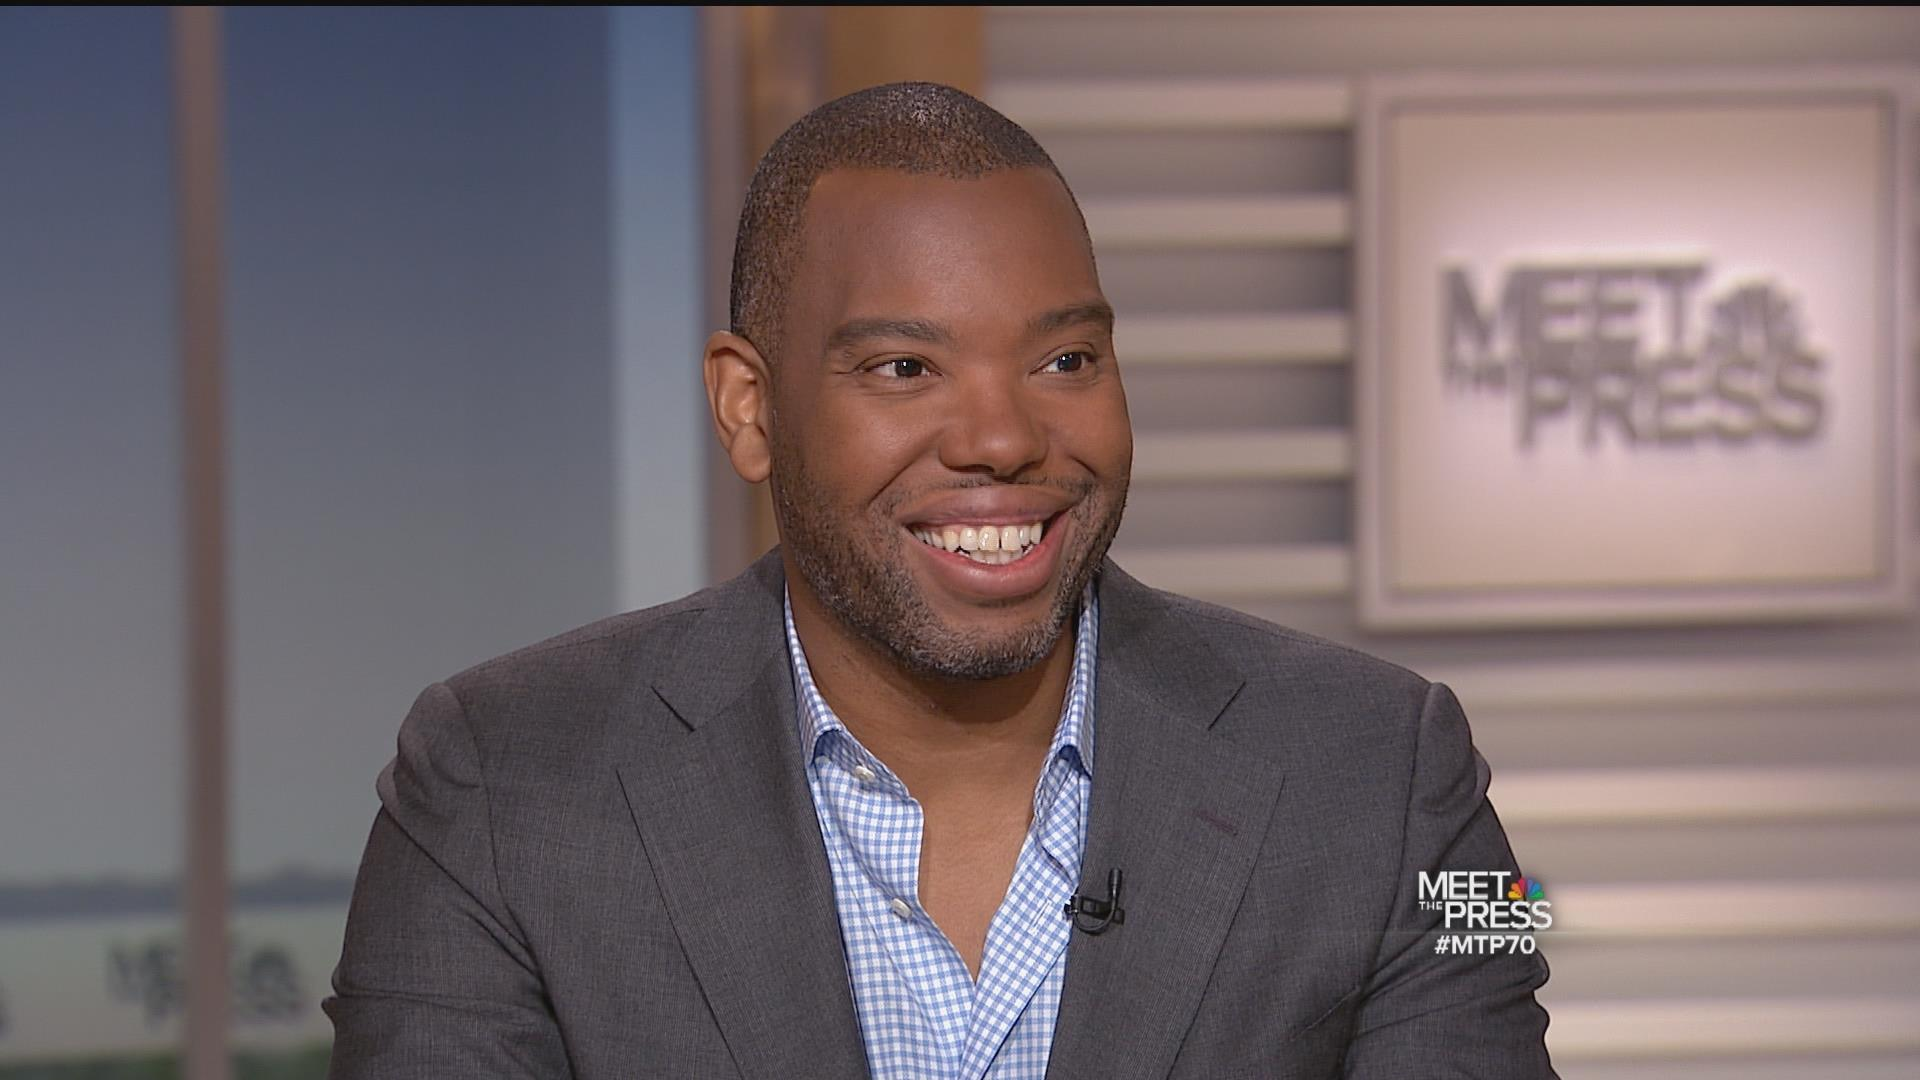 Ta-Nehisi Coates: 'I See Chaos' on Race Relations in America